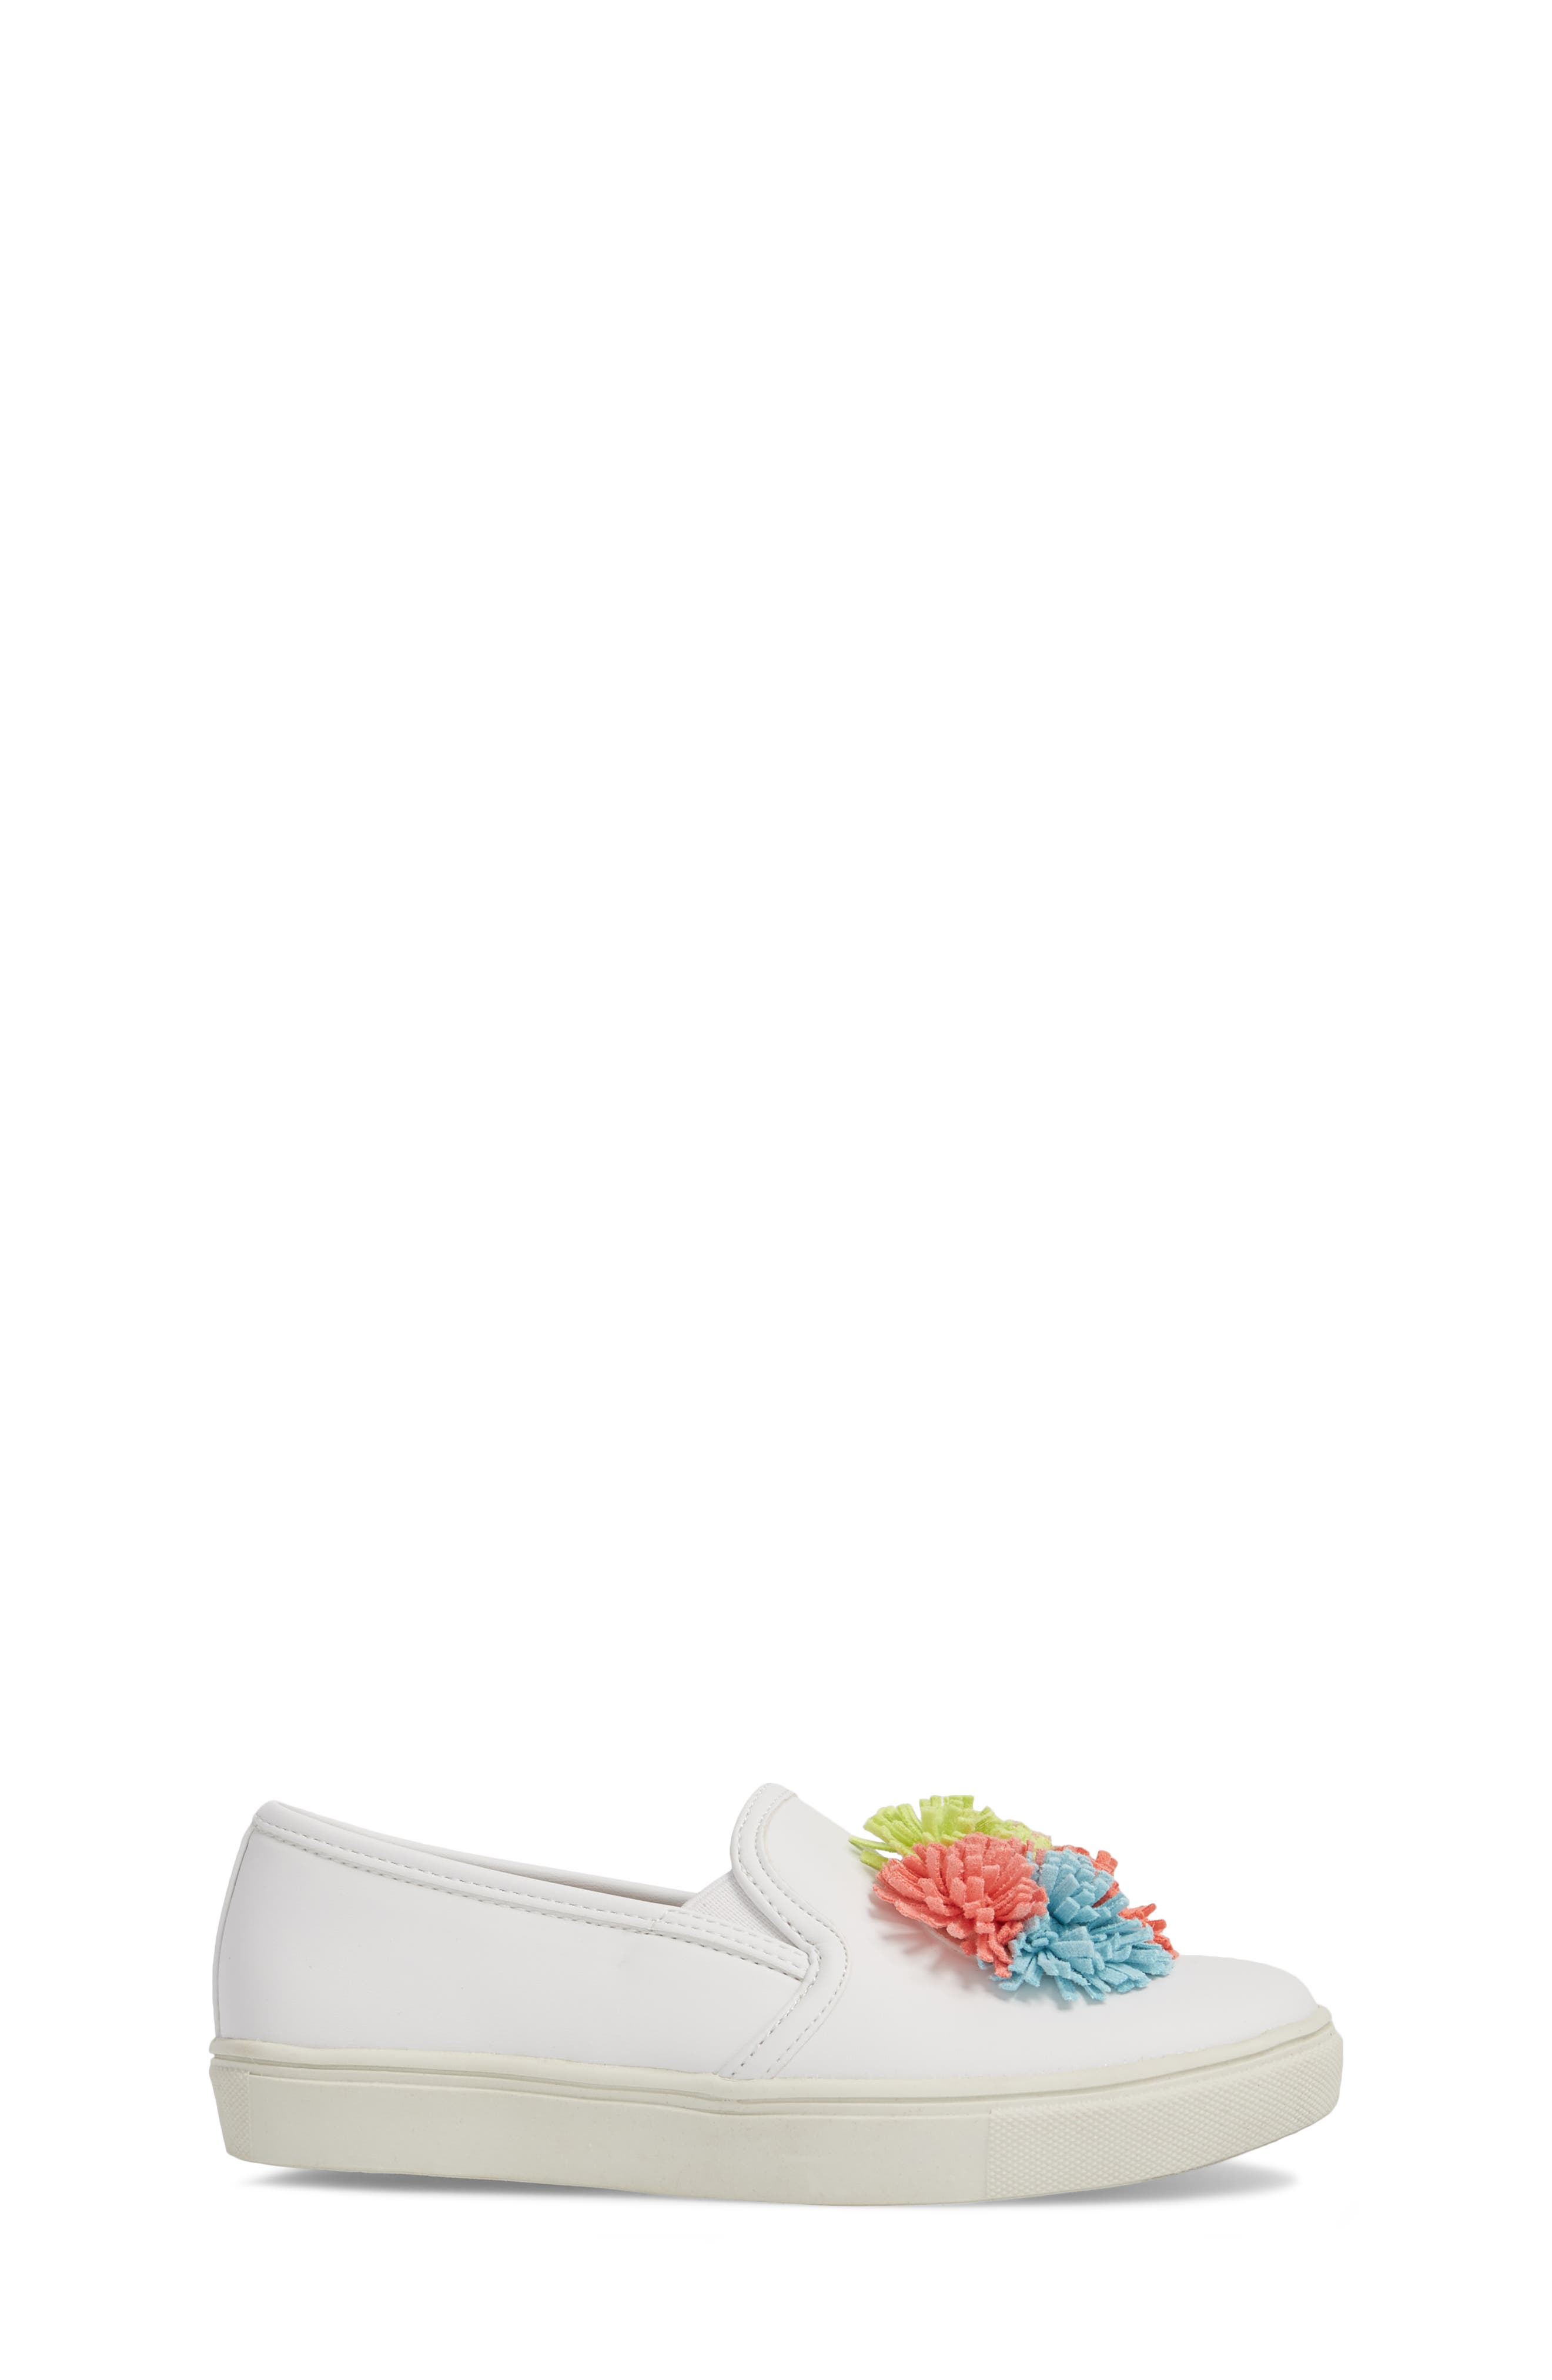 Twiny Pompom Slip-On Sneaker,                             Alternate thumbnail 3, color,                             White Faux Leather